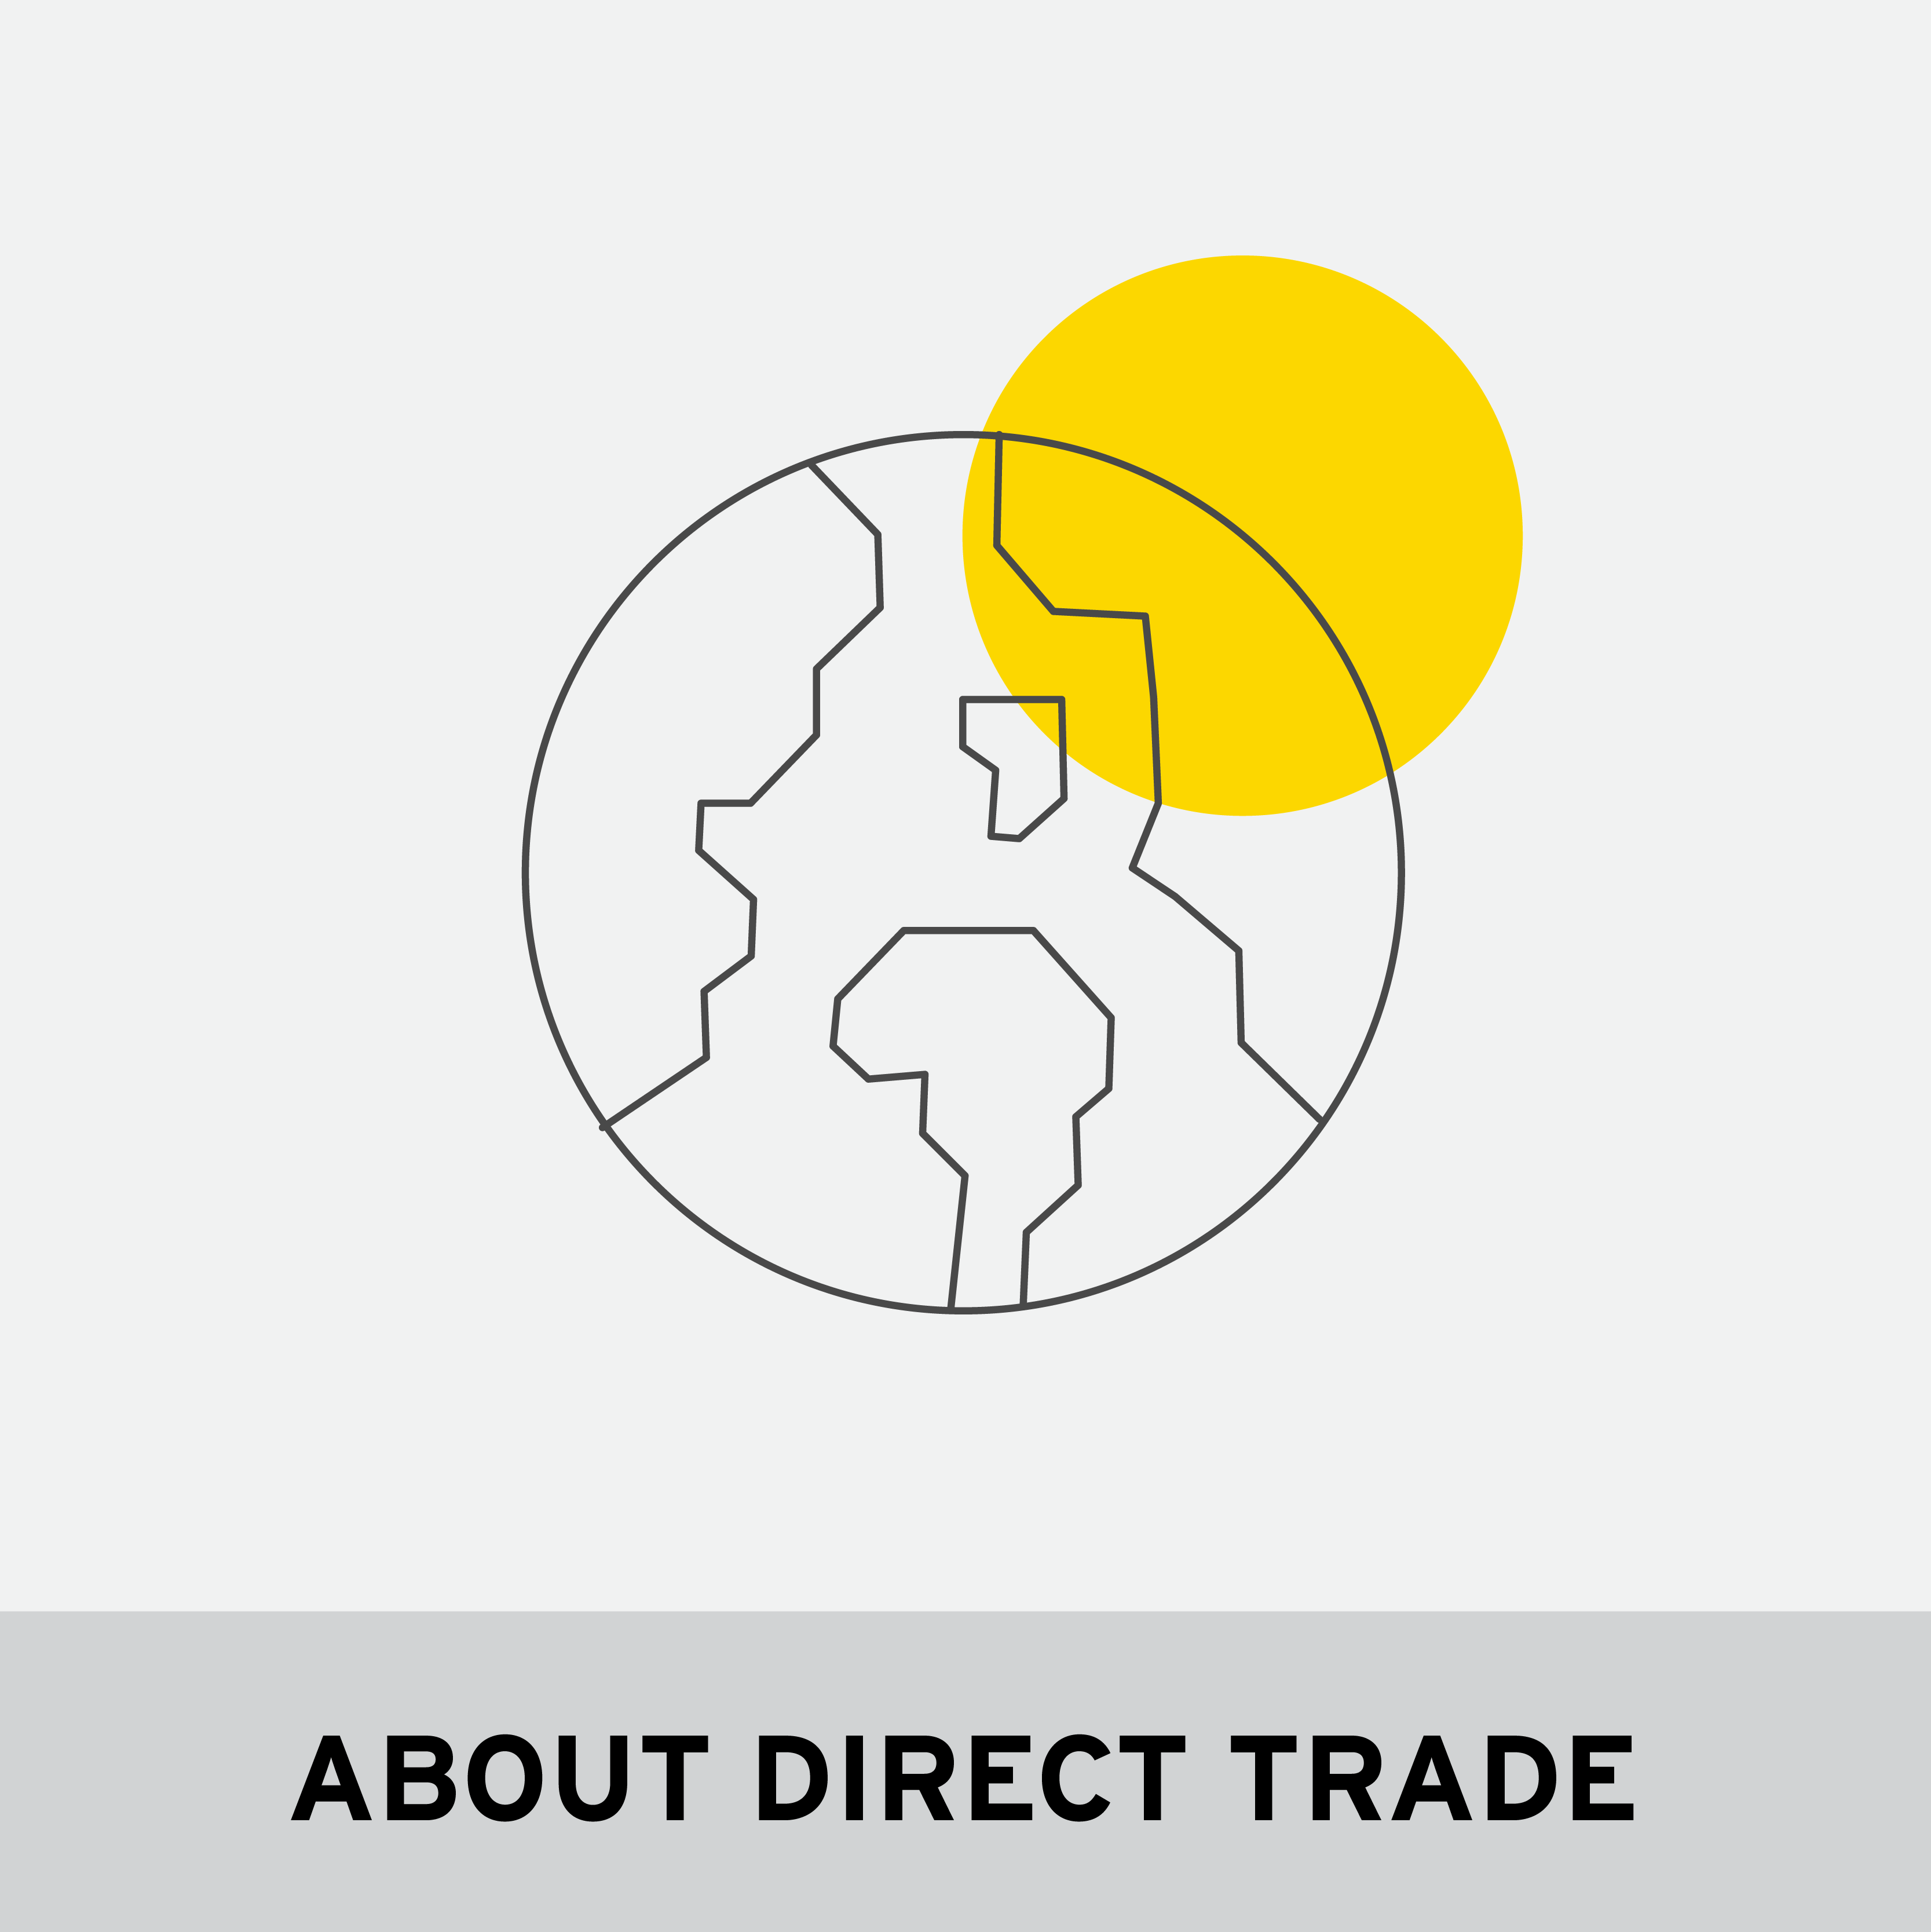 ABOUT DIRECT TRADE